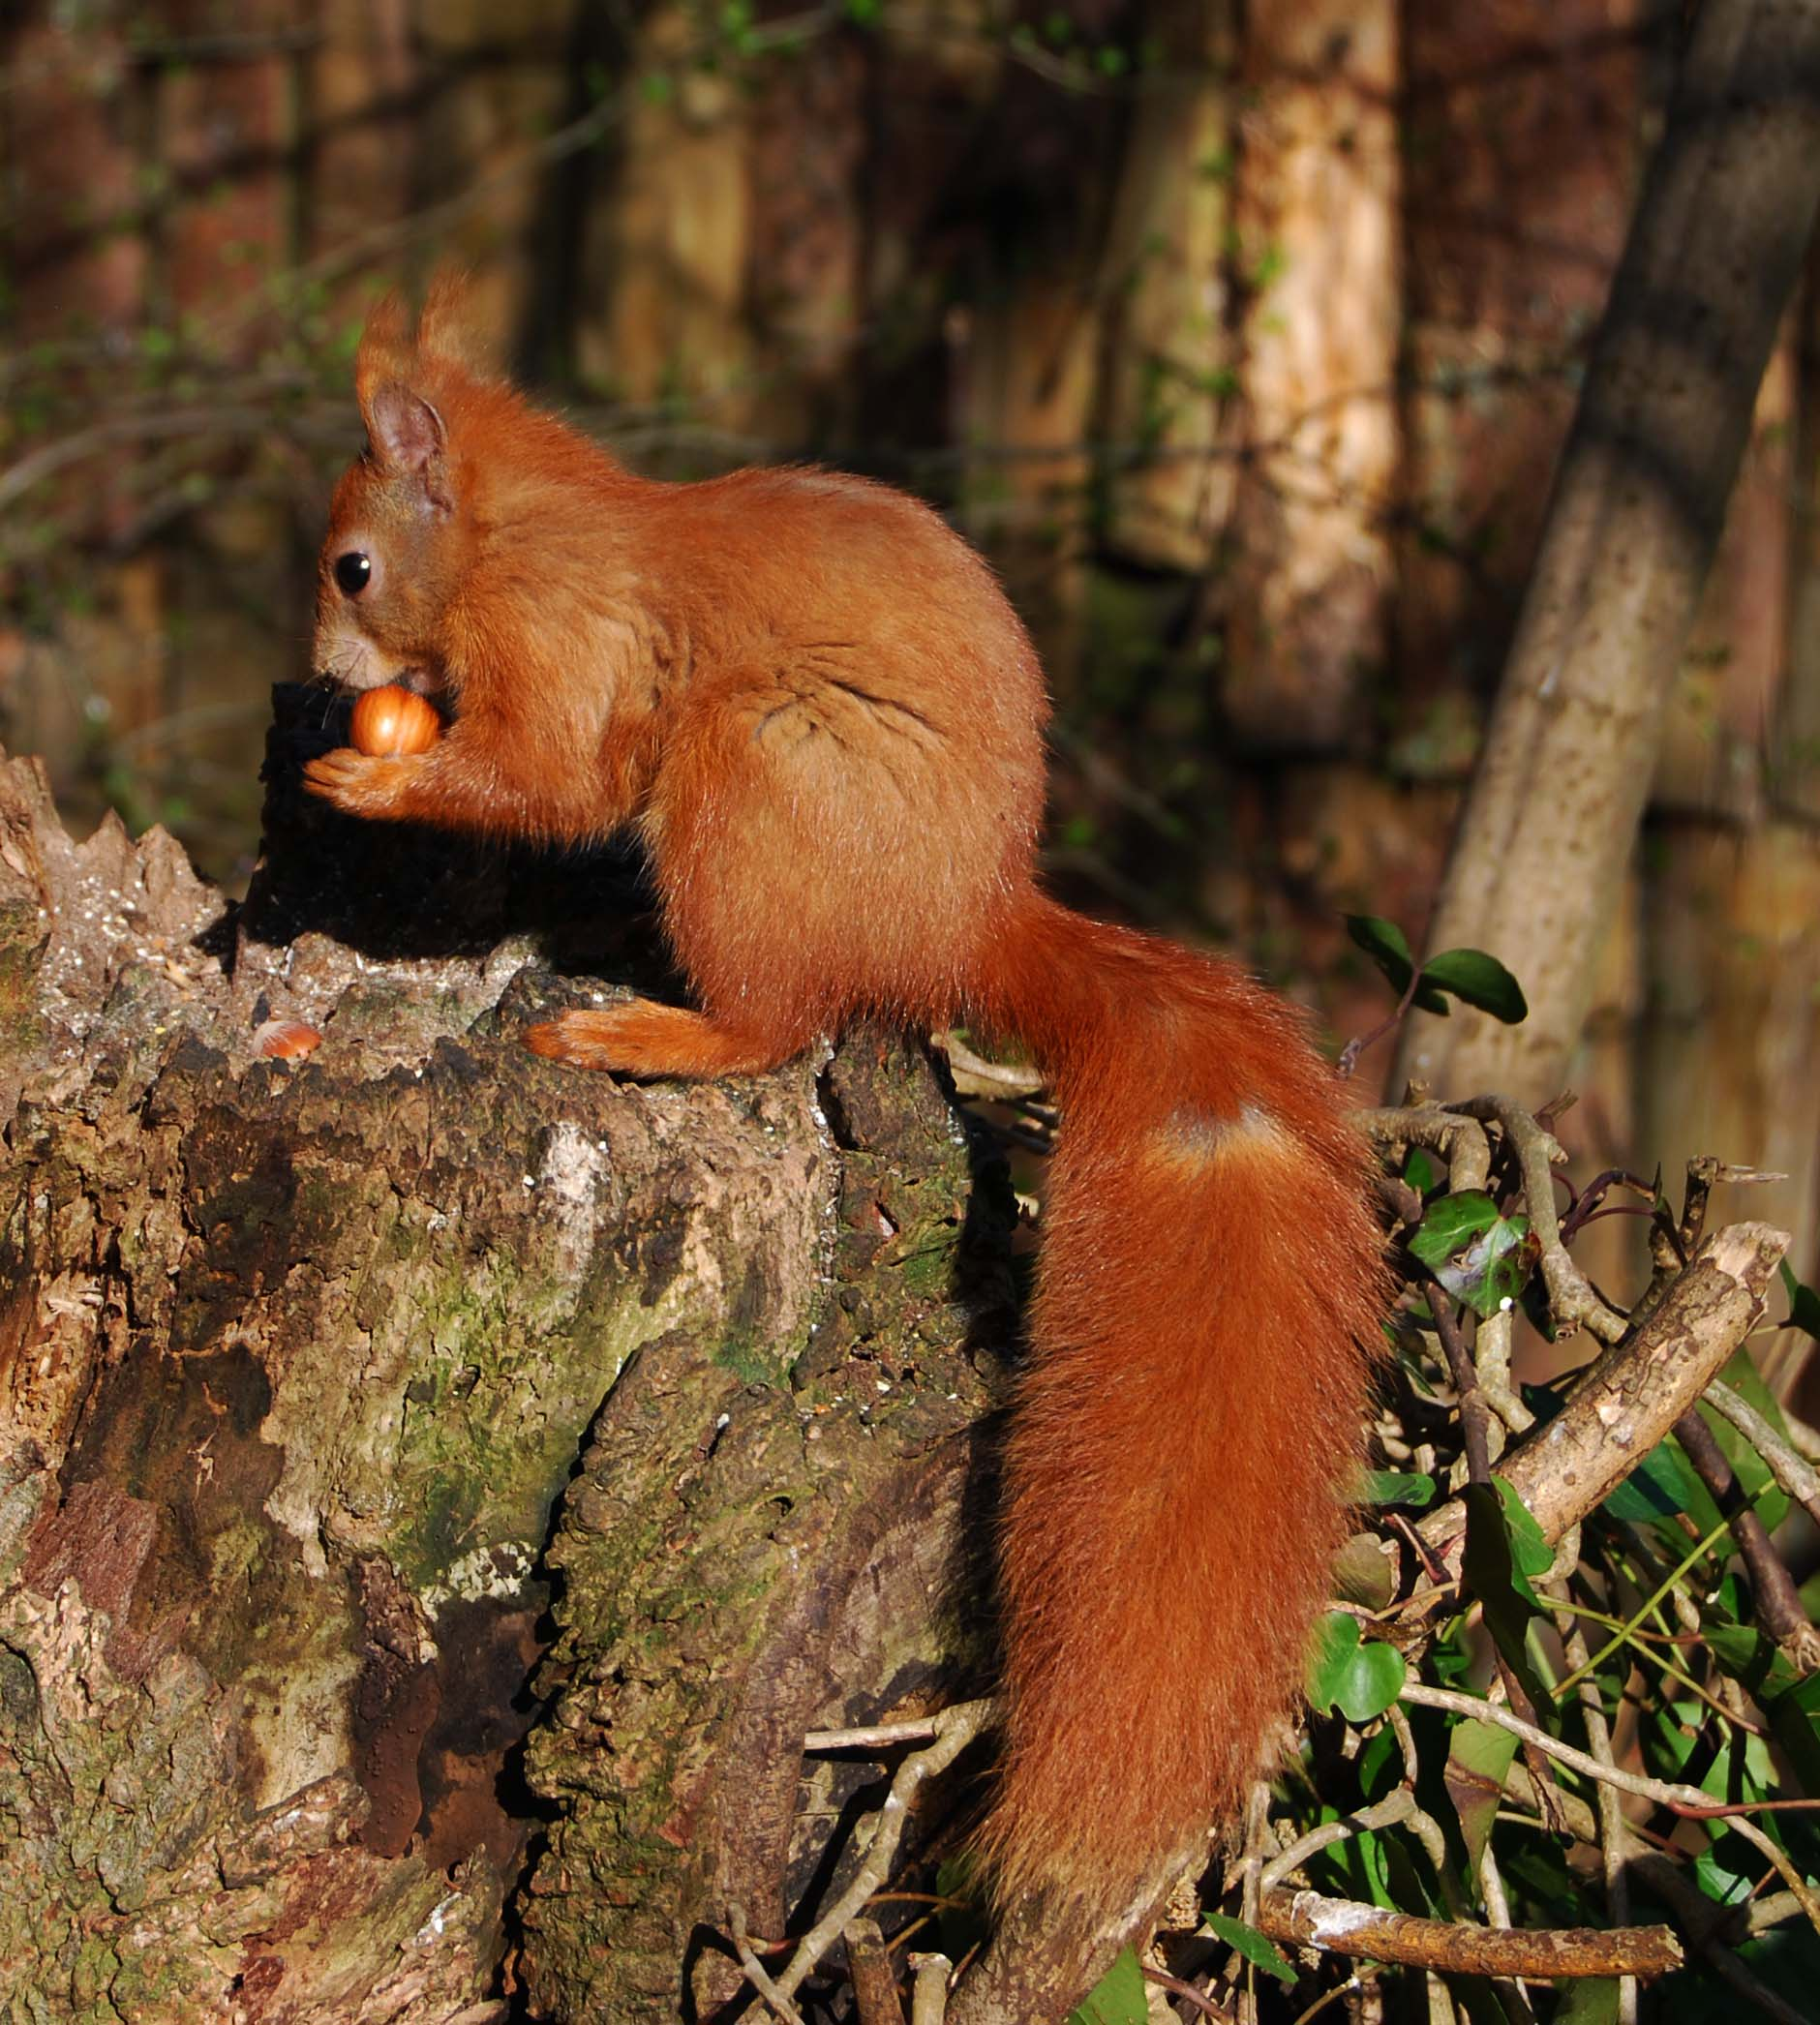 Isle of Wight red squirrel by Helen Butler